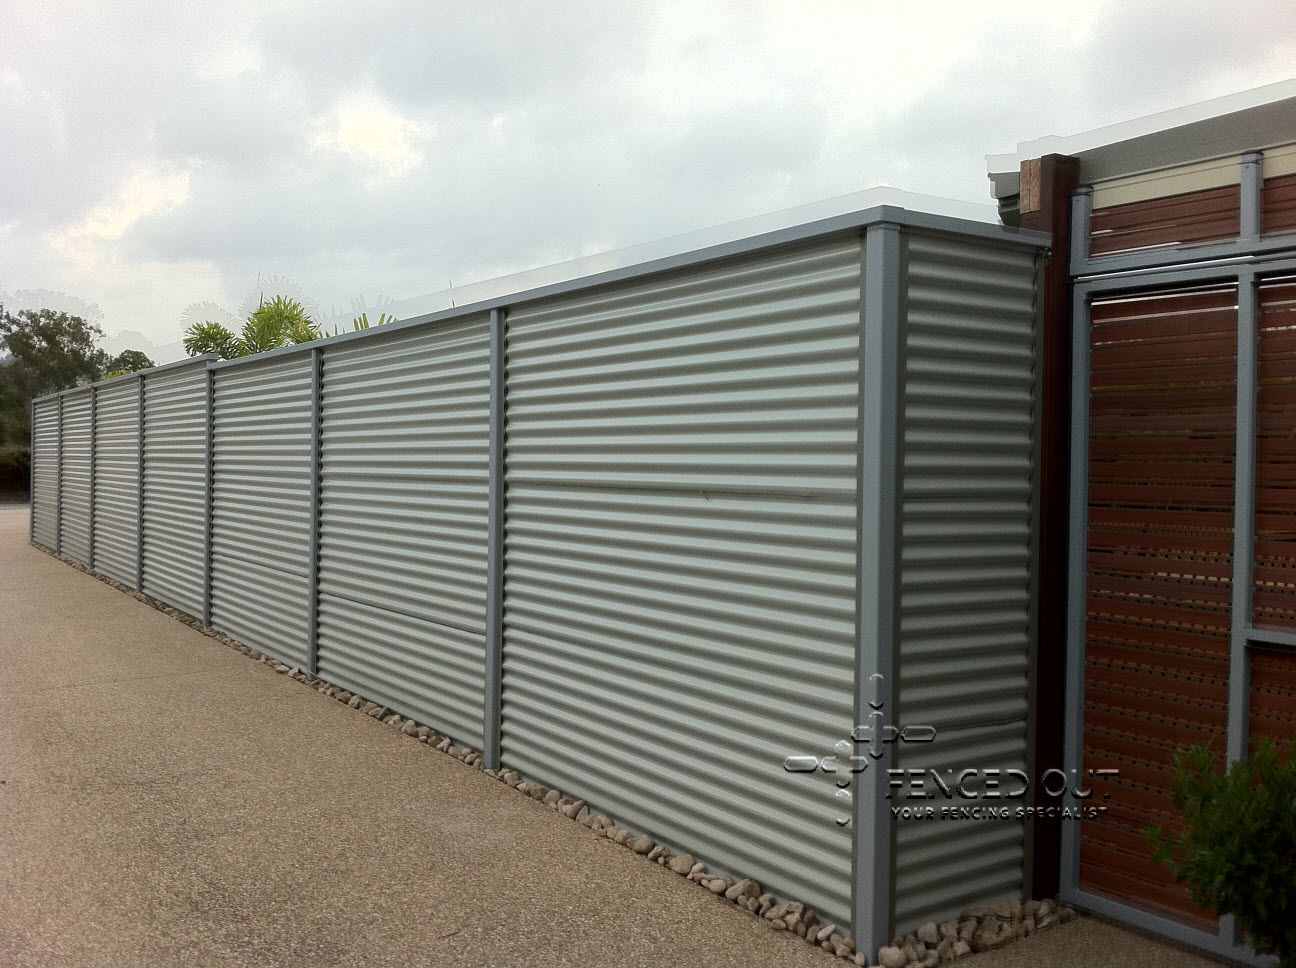 Corrugated metal fence and corrugated metal fences all steel fence corrugated metal fence and corrugated metal fences all steel fence design workwithnaturefo